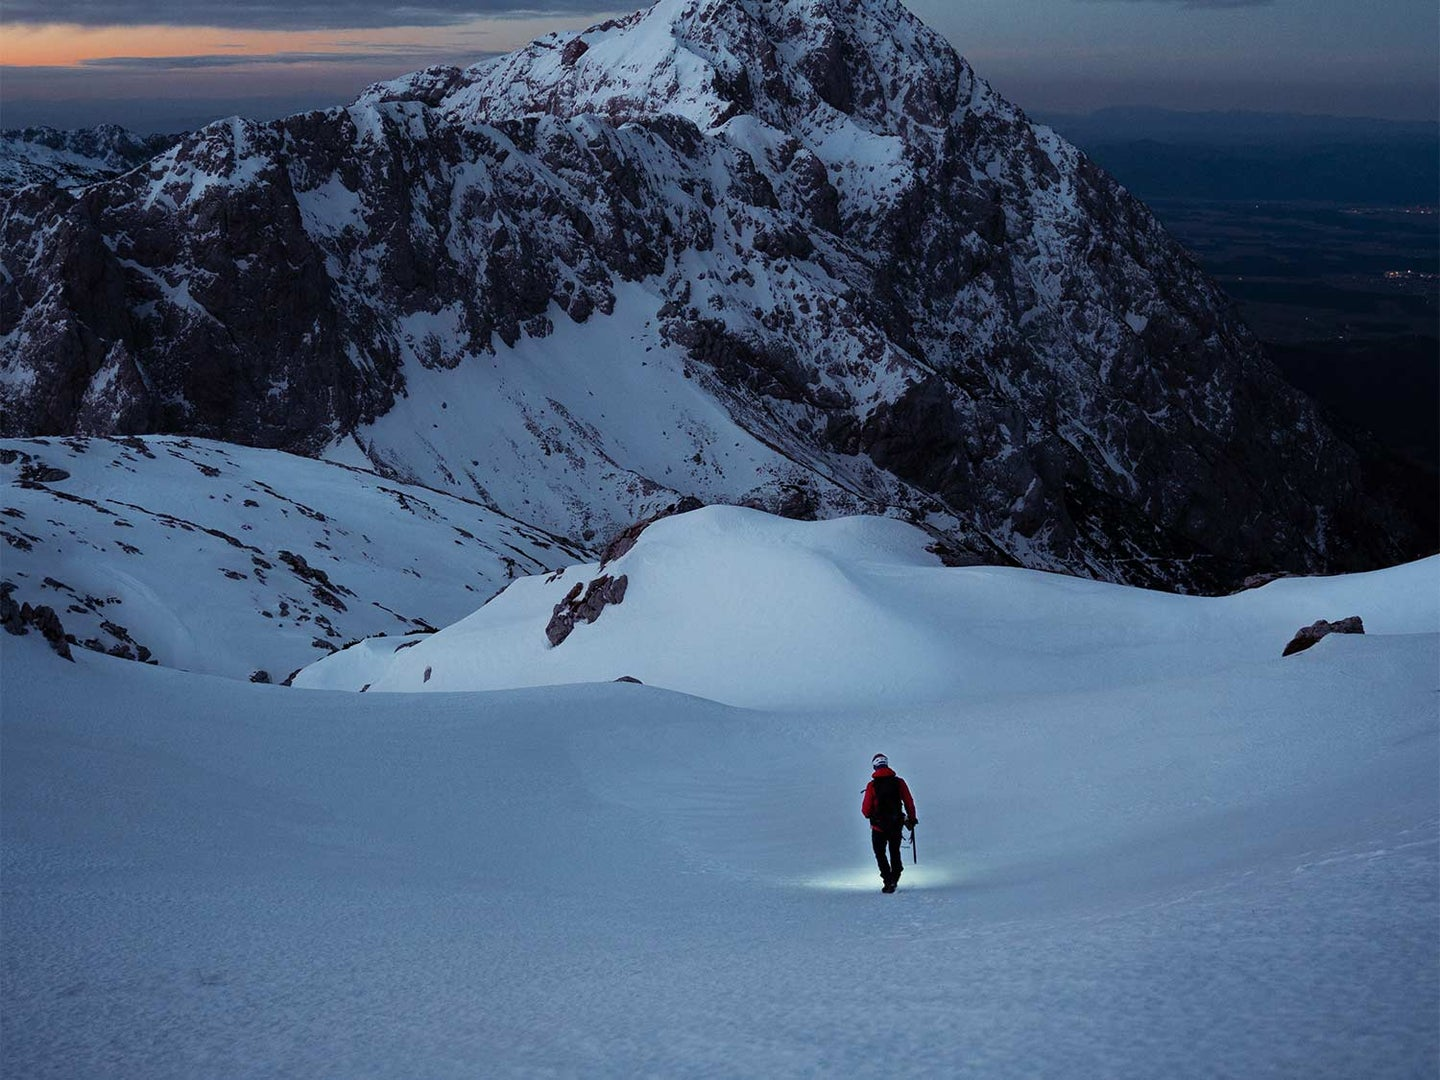 A person walks through the snow on the mountain side.